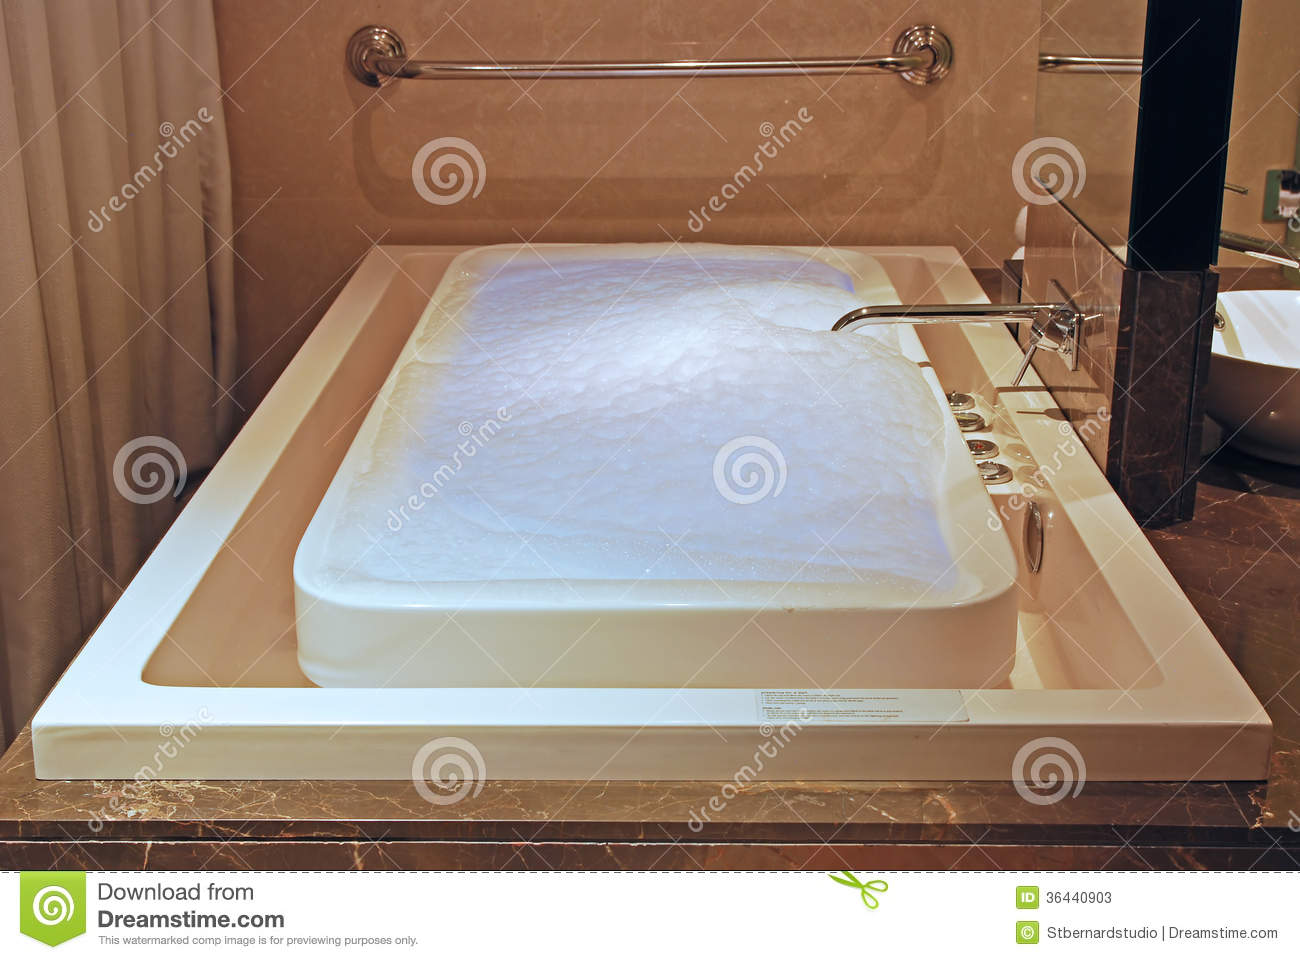 JACUZZI INFINTY FLOW BATH TUB Stock Image - Image of bubbles, inroom ...